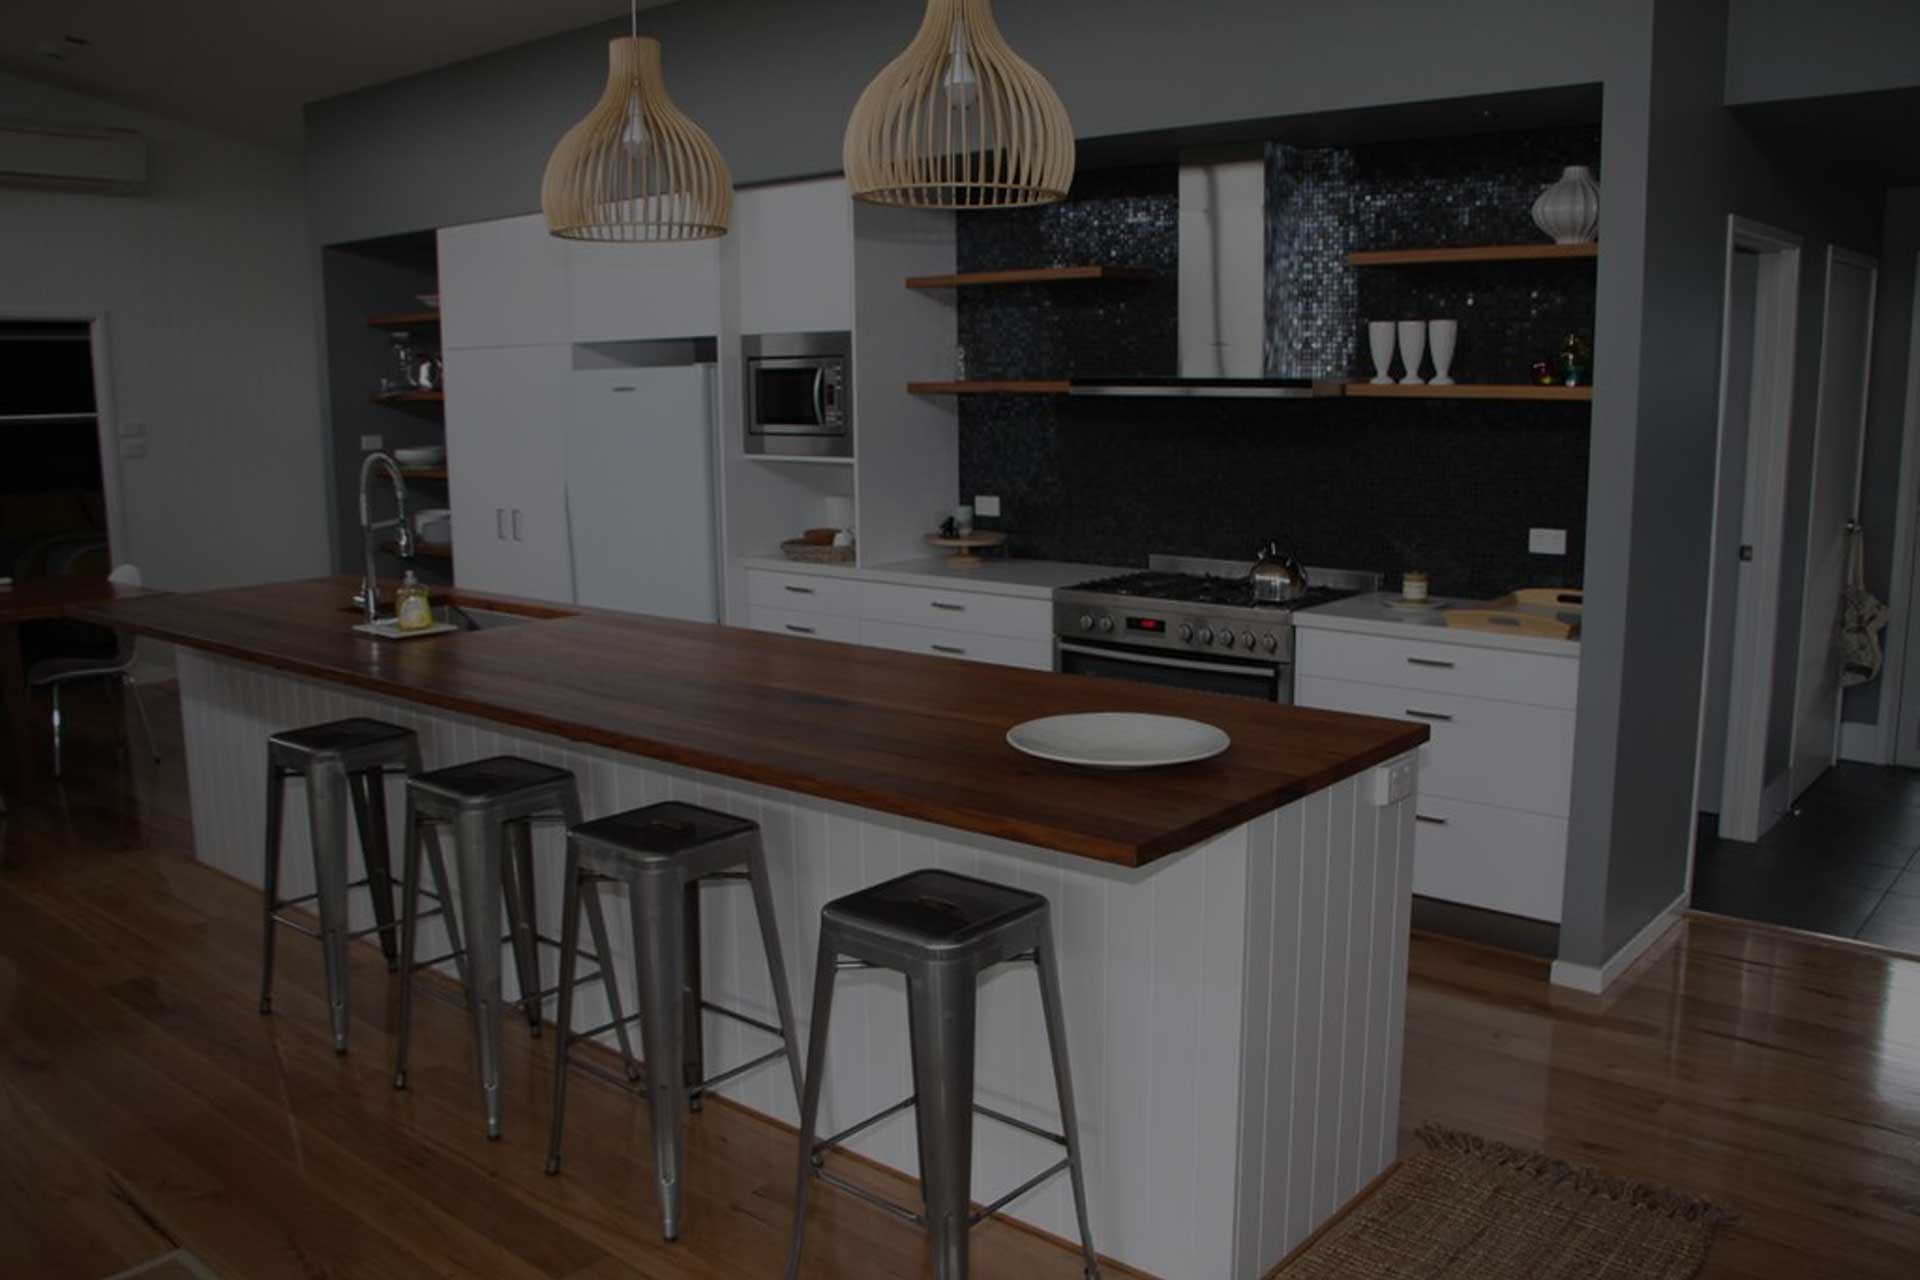 Canberra Kitchens Lifestyle Kitchens Canberra Kitchen Renovations